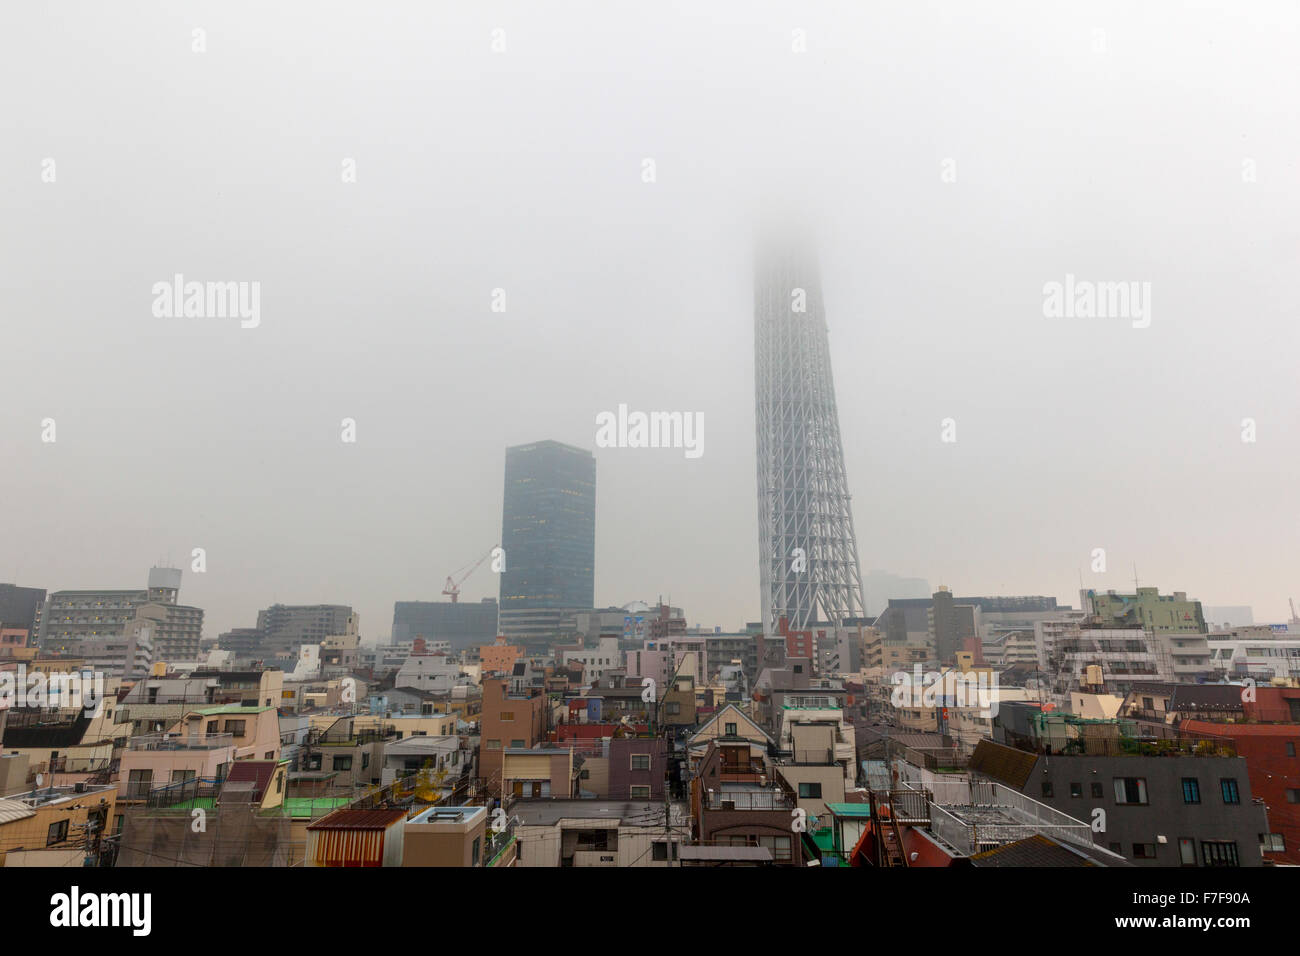 Skytree tower enveloped in fog in Tokyo, Japan - Stock Image